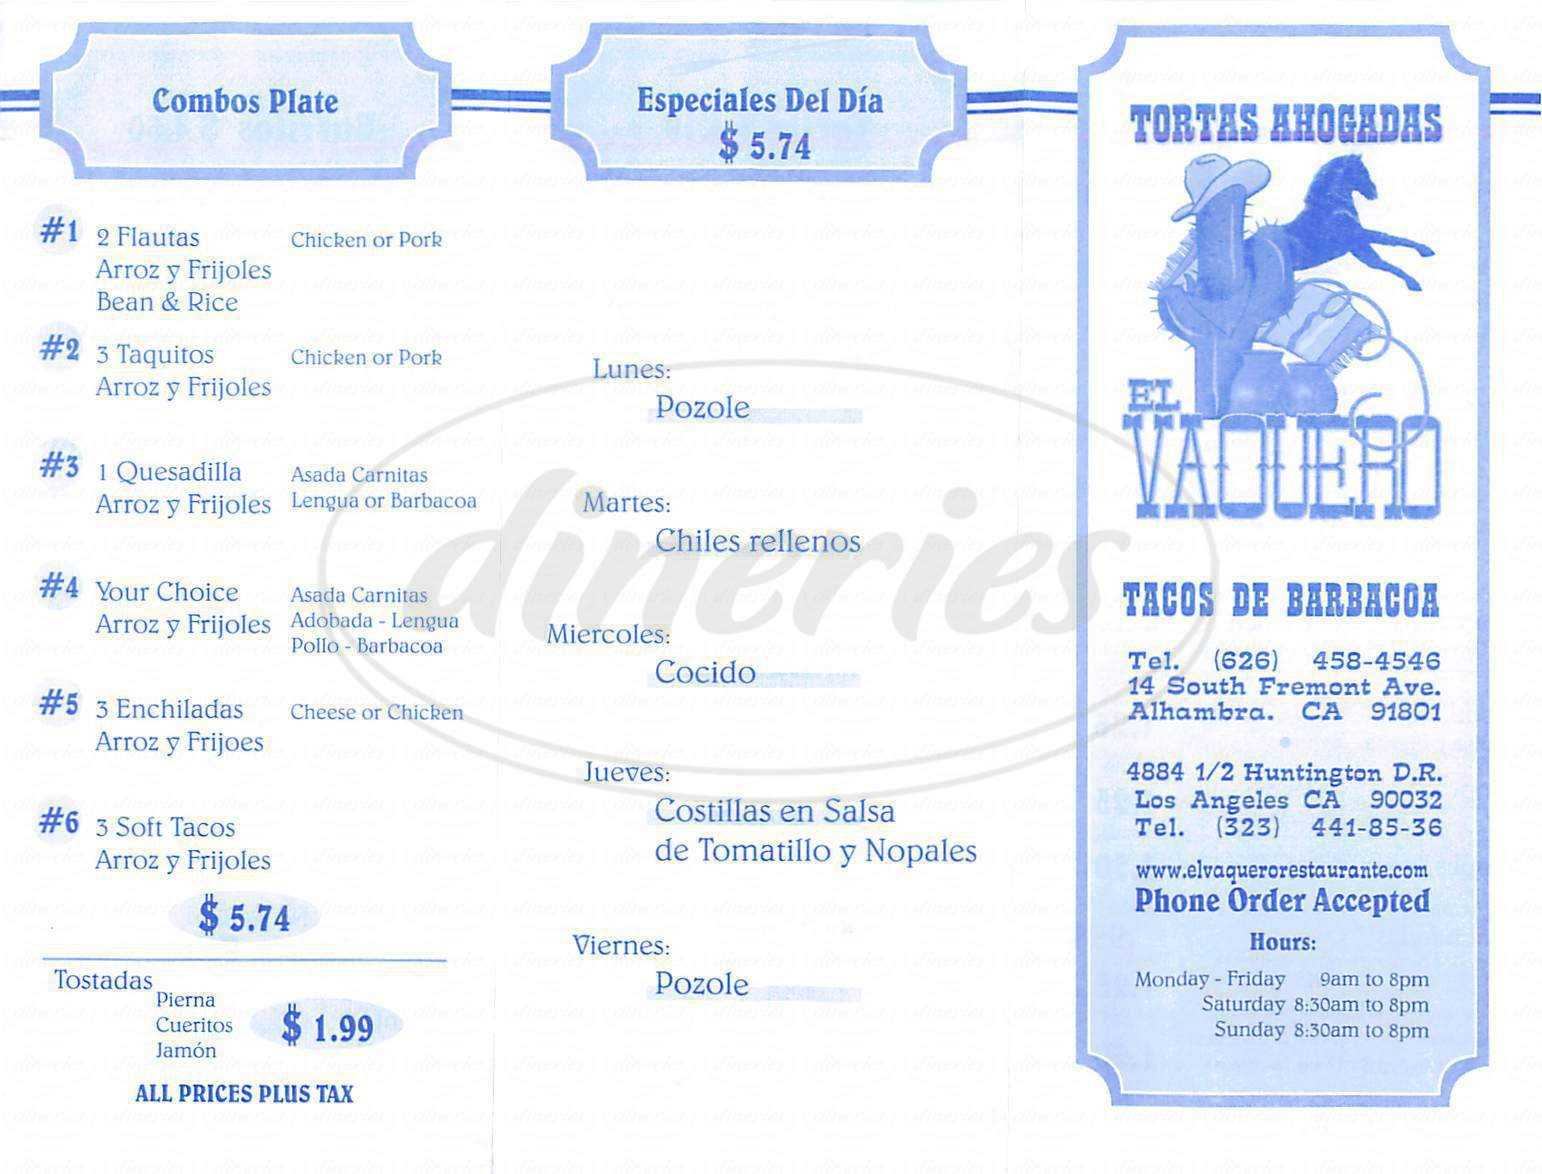 menu for El Vaquero